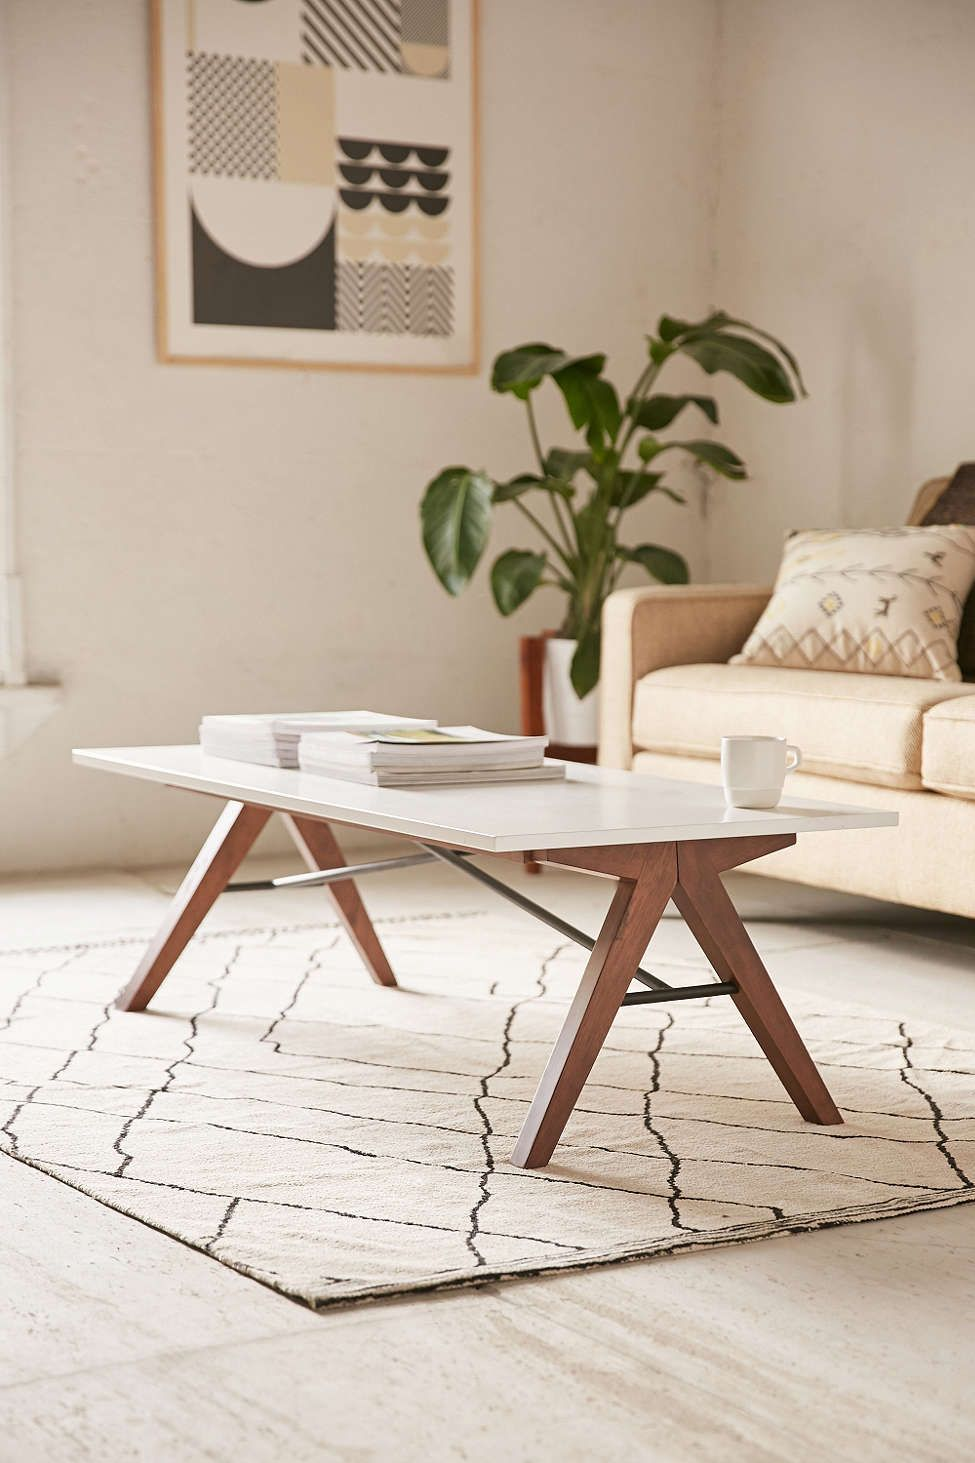 Living Room Ideas A Modern Coffee Table f Your French Pressed Coffee_2 modern coffee table Living Room Ideas: A Modern Coffee Table f/ Your French Pressed Coffee Living Room Ideas A Modern Coffee Table f Your French Pressed Coffee 5